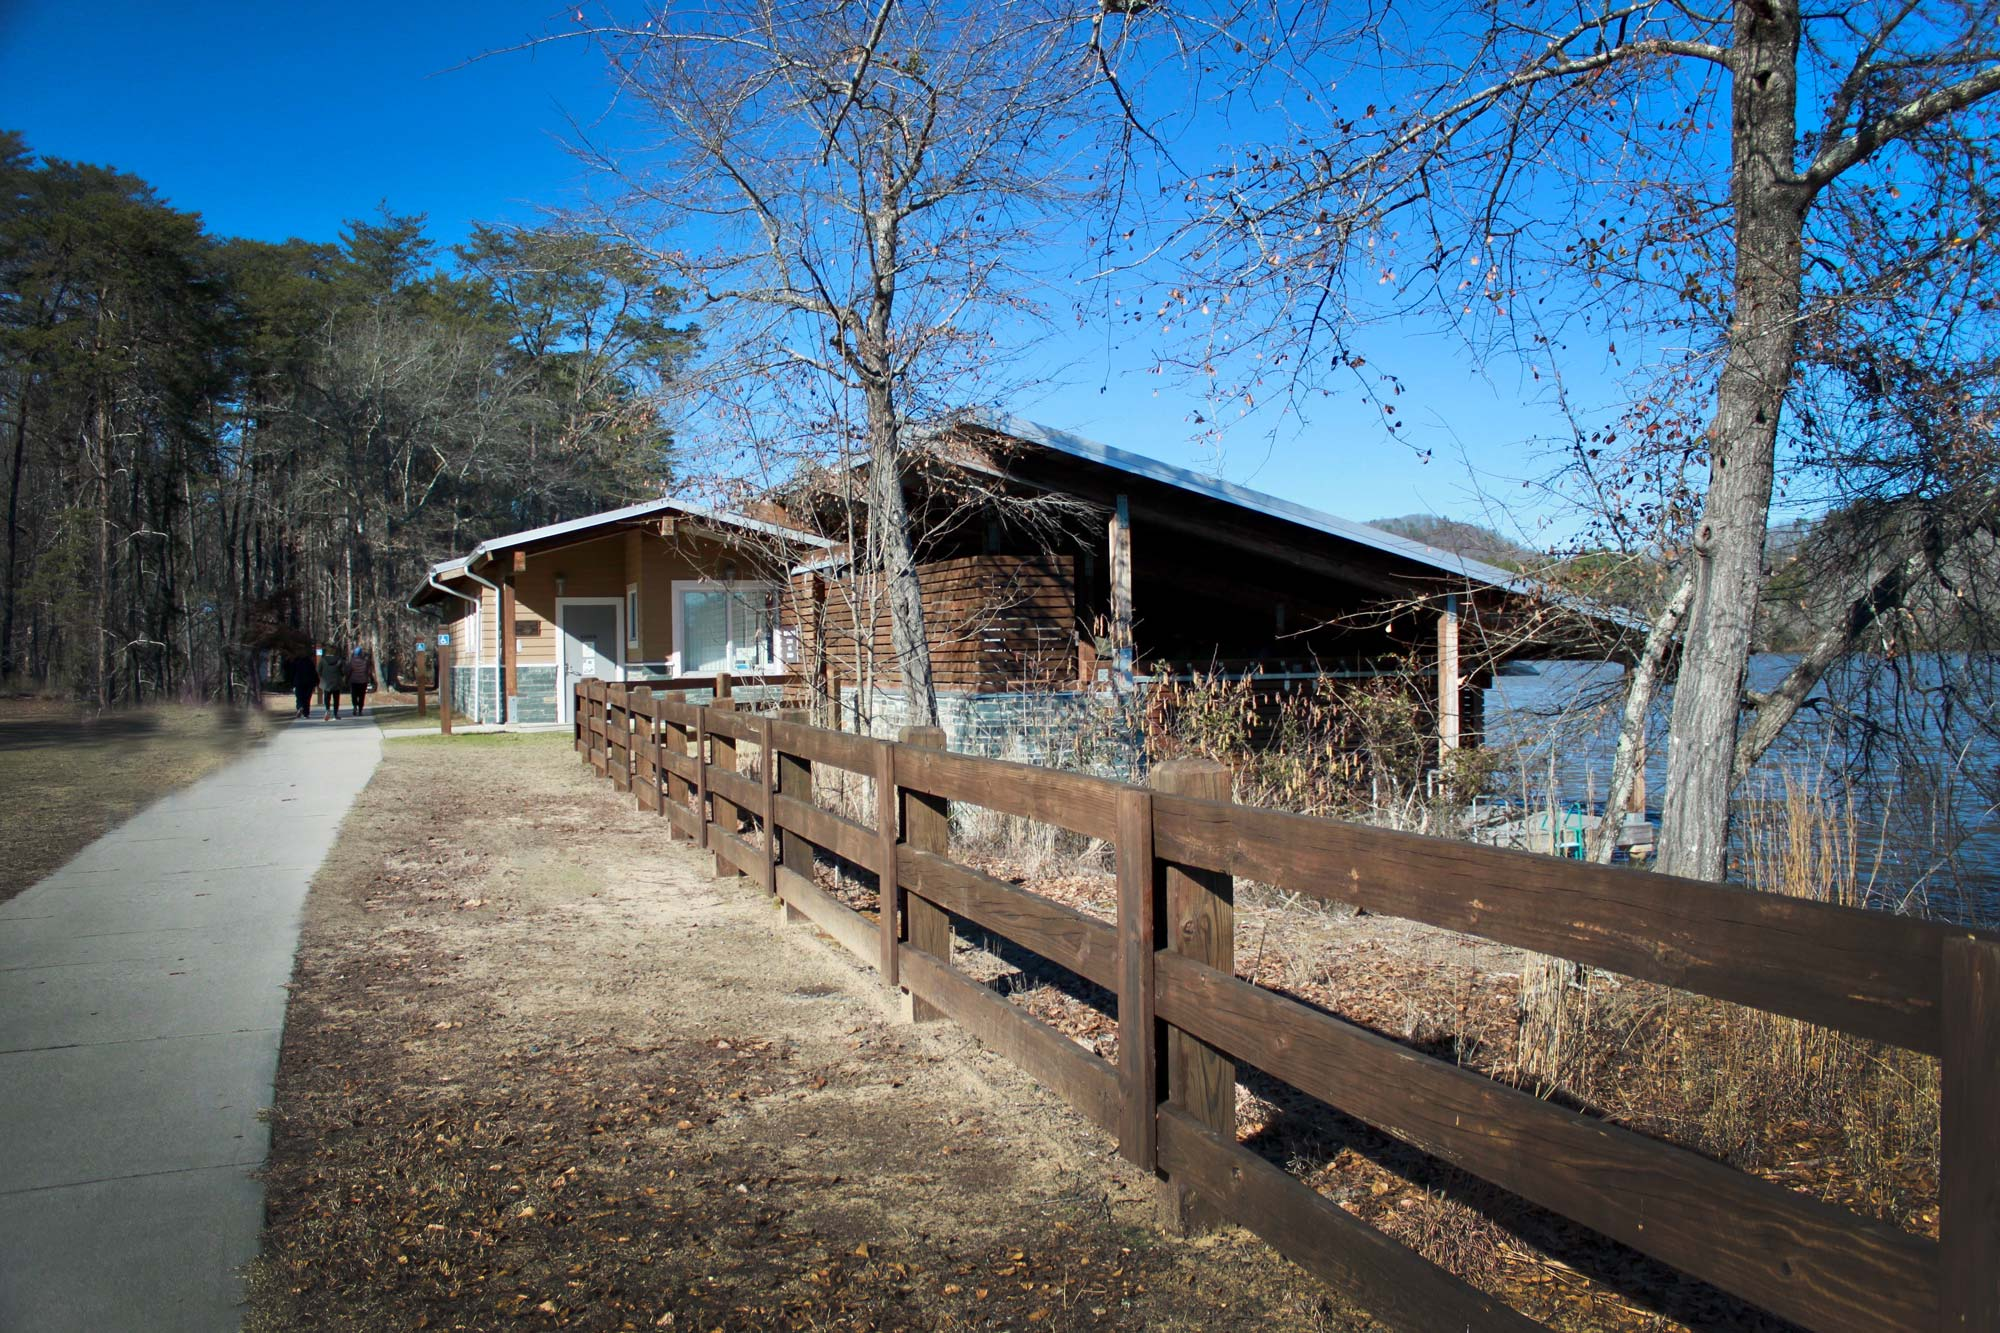 Boat house rental on Lake Tillery  in Morrow Mountain State Park, North Carolina